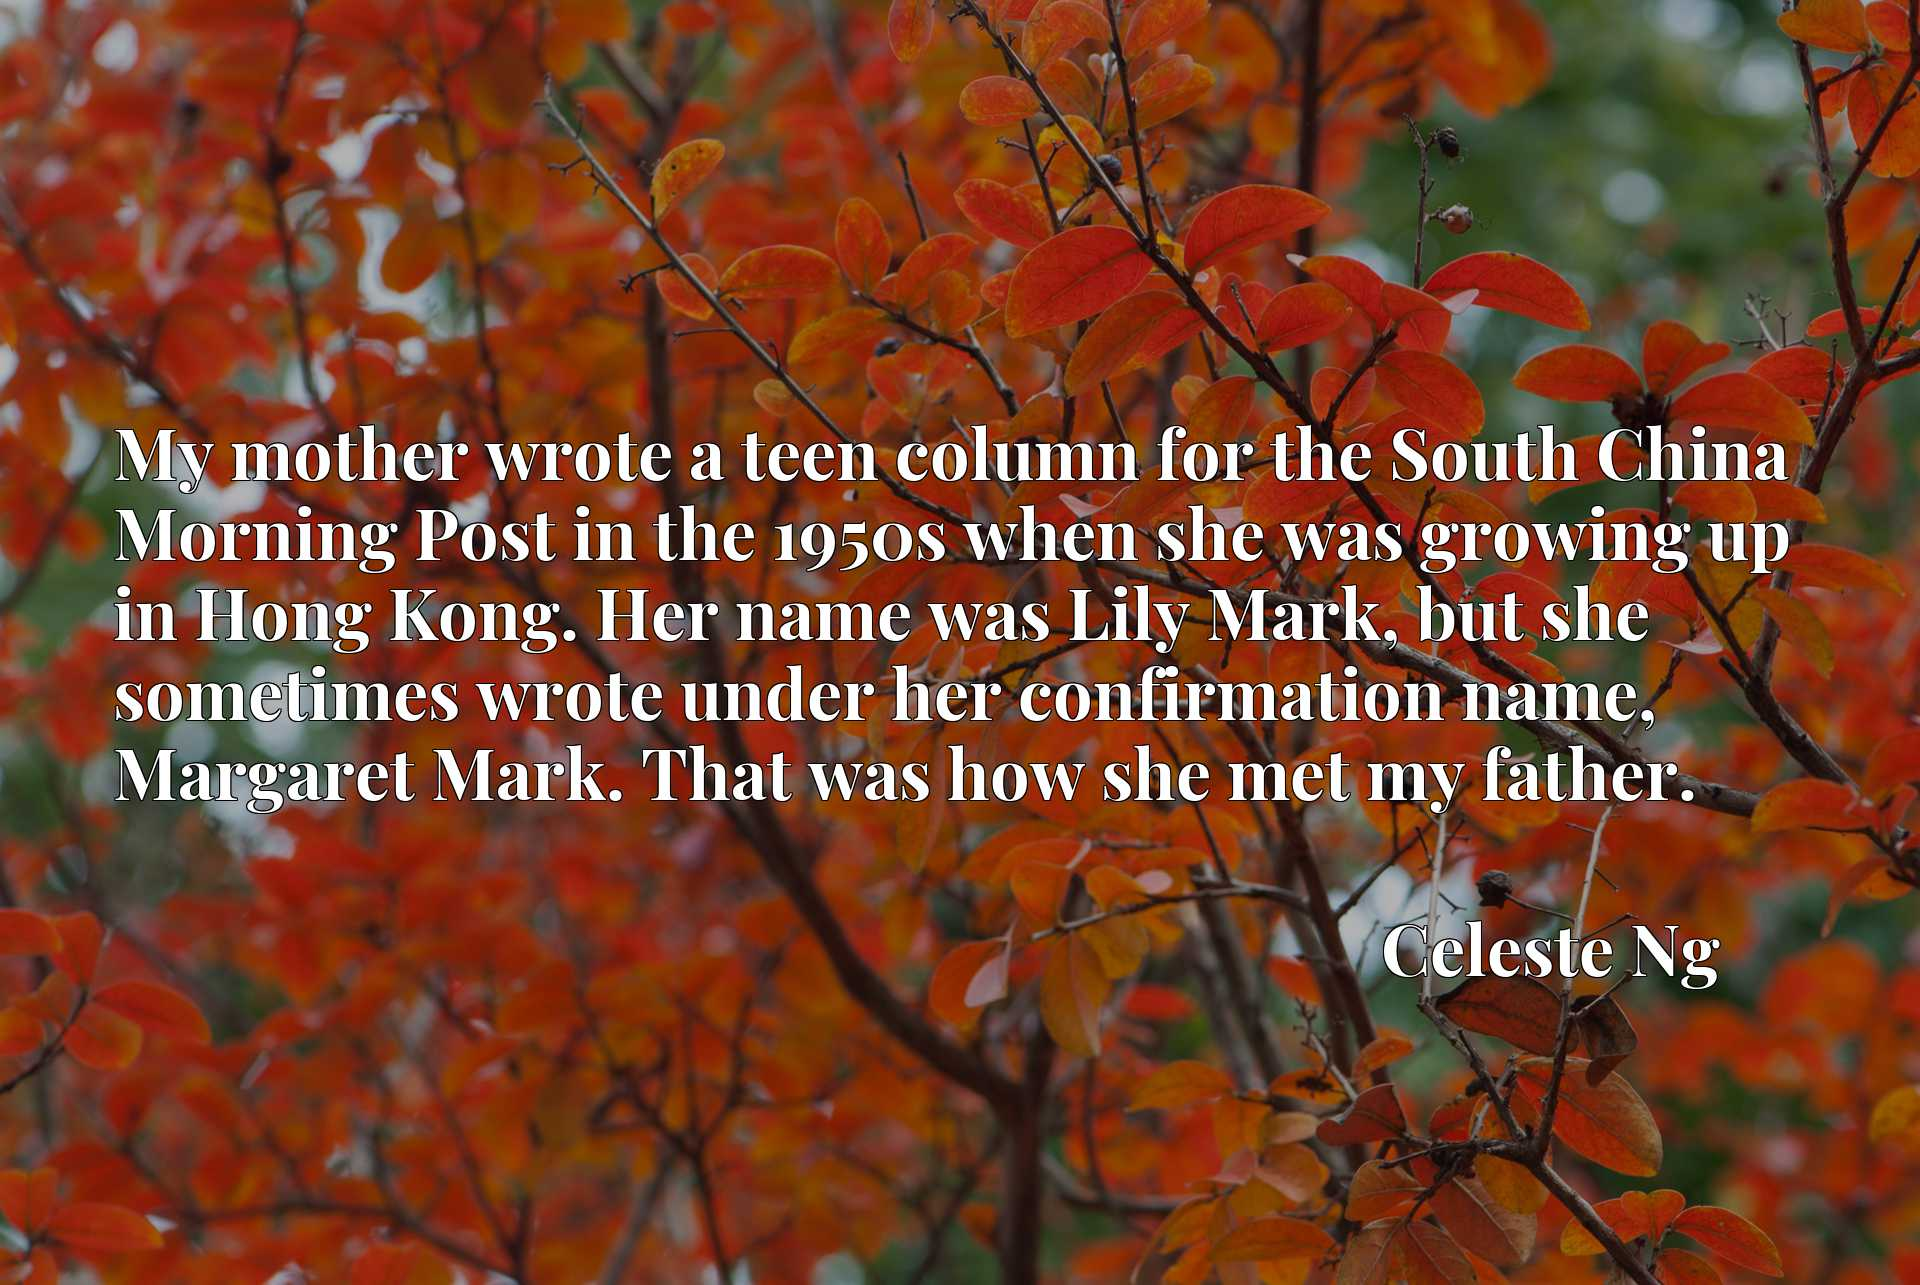 My mother wrote a teen column for the South China Morning Post in the 1950s when she was growing up in Hong Kong. Her name was Lily Mark, but she sometimes wrote under her confirmation name, Margaret Mark. That was how she met my father.